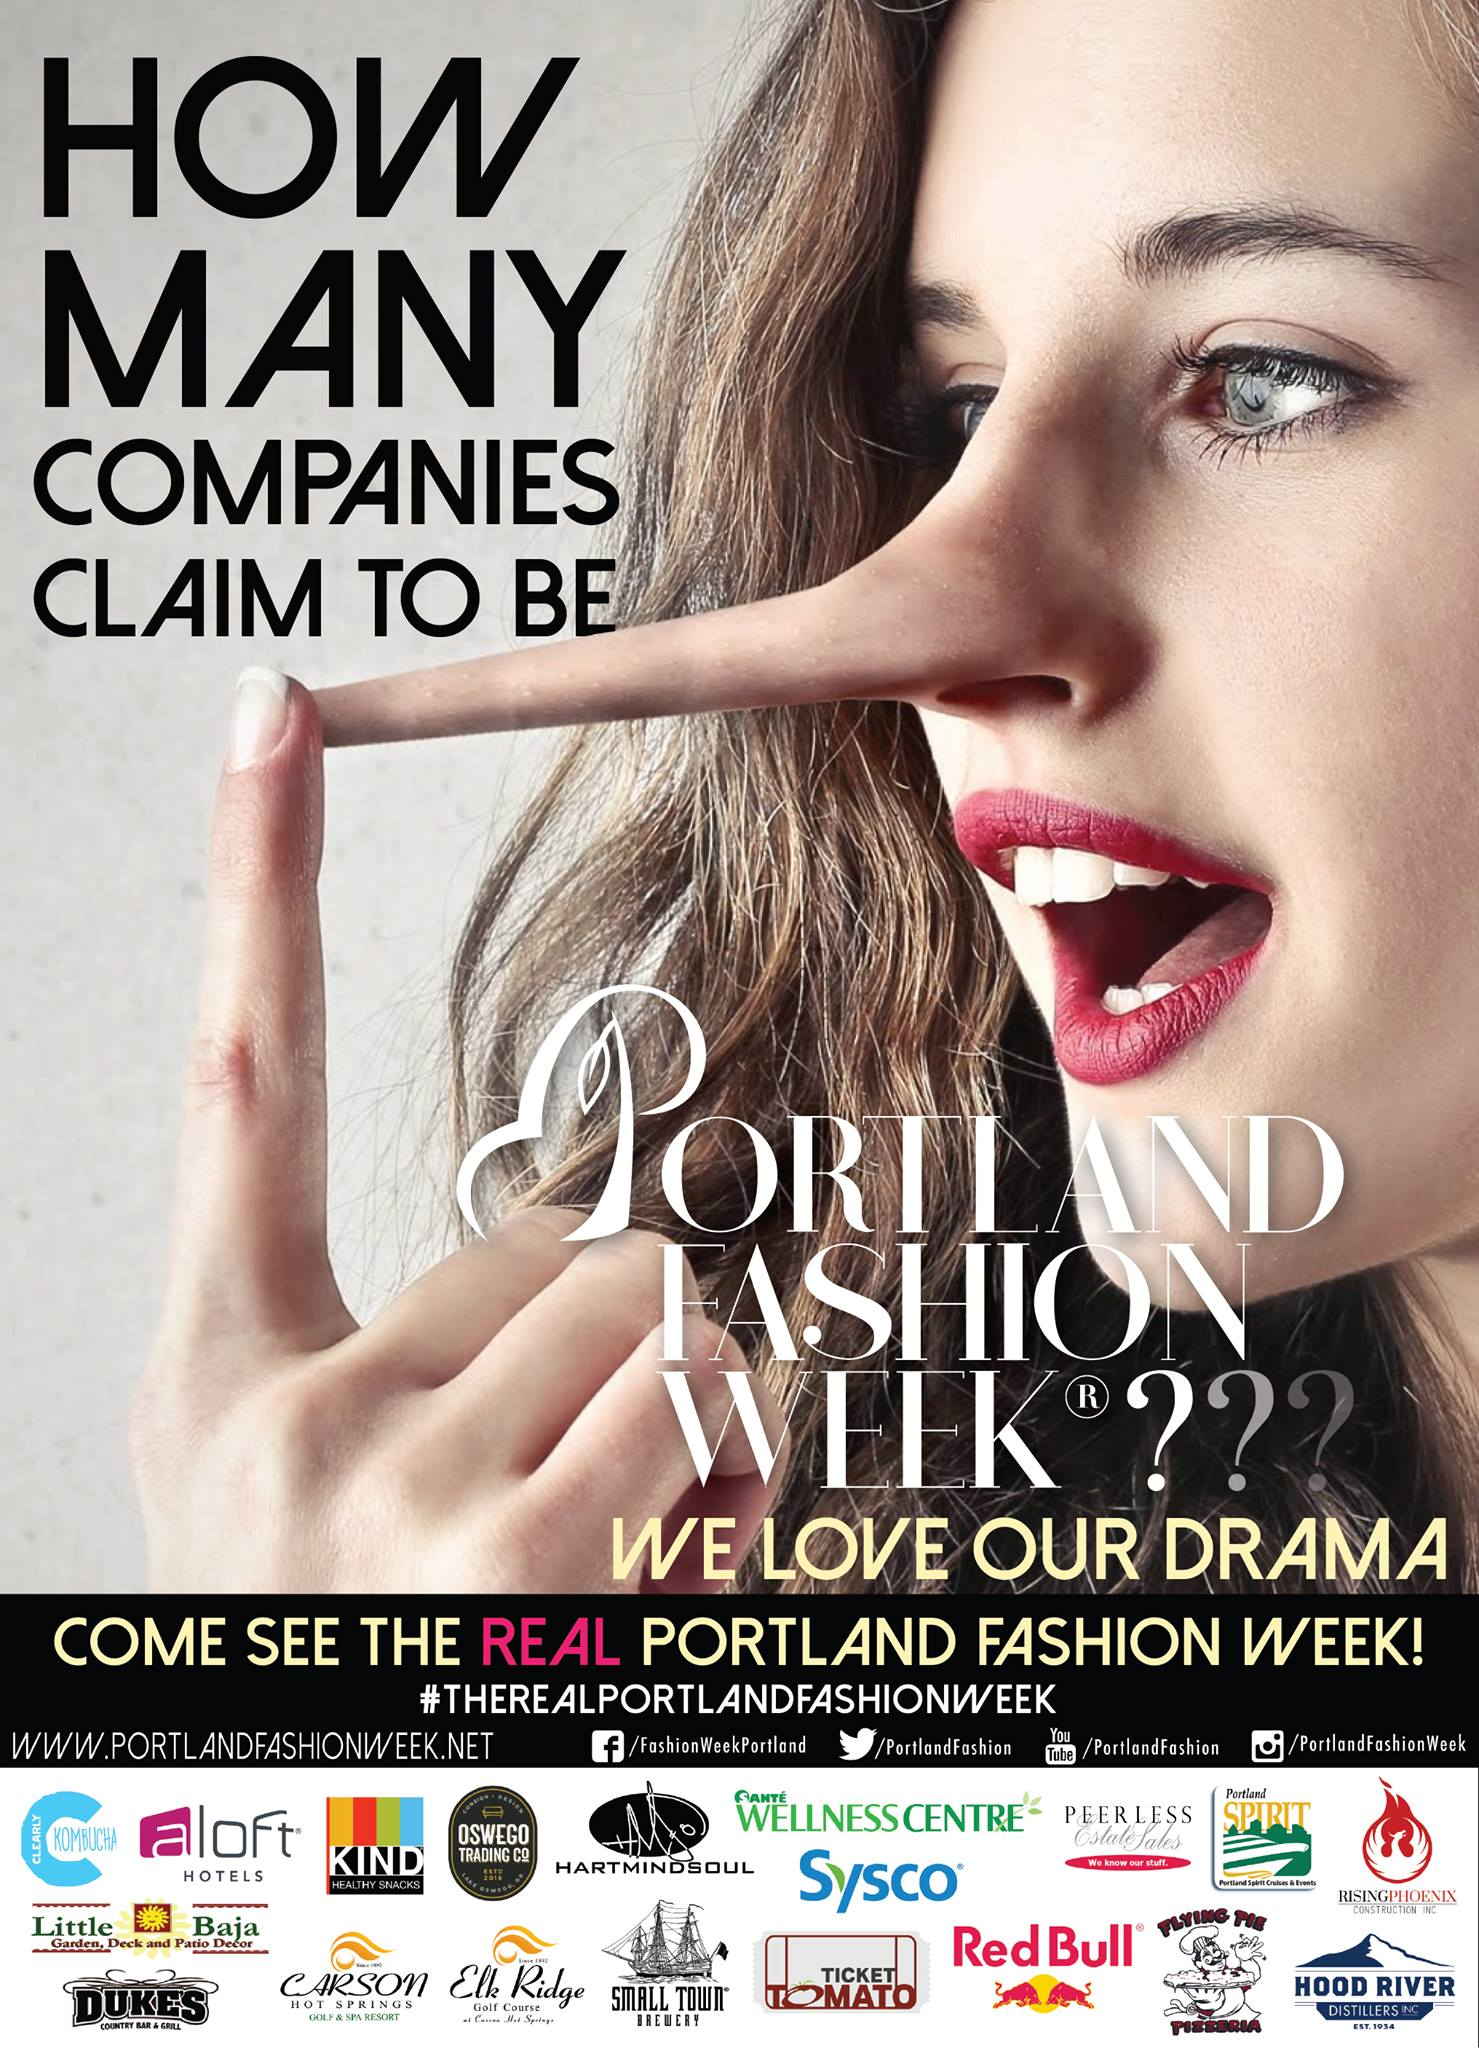 "If the company doesn't say Portland Fashion Week..... - Anyone can claim laurels in private or drag TIME Magazine articles around, but if you are not dealing with PFW LLC then you are NOT dealing with #THEREALPORTLANDFASHIONWEEK.Beware as we have imitators in the form of disgraced ejected ex-producer Prasenjit ""Tito"" Chowdhury of Fashionxt and Fashionxt producers claiming our glory, the Portland Fashion Week name, our TIME Magazine article and deliberately muddying waters. We ask anyone who is approached by ''Portland Fashion Week'' under the Fashionxt guise to please contact us. All communication will be held with the strictest confidentiality.PFW LLC the REAL Portland Fashion Week- Active since 2002."